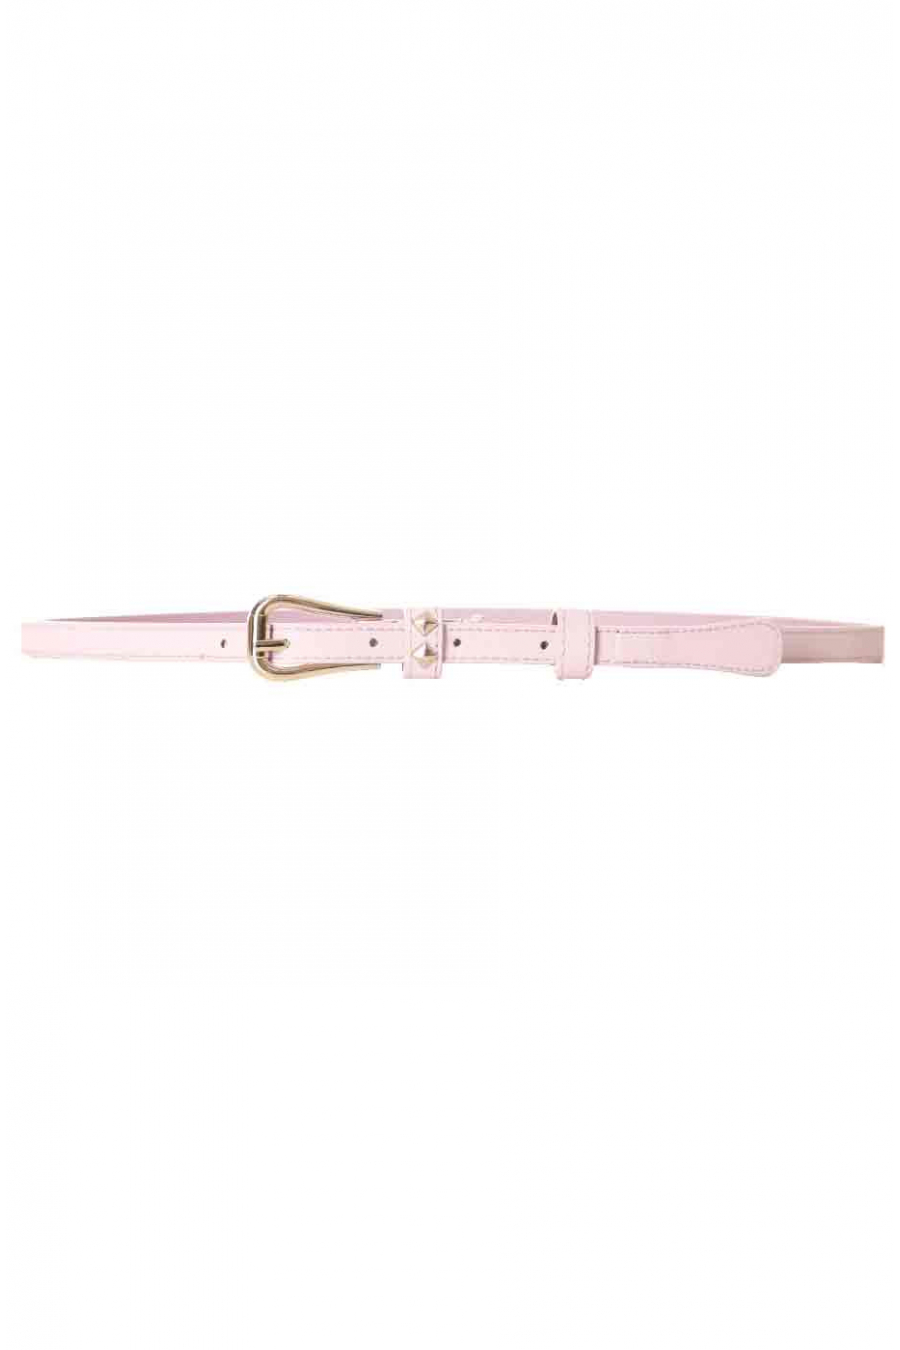 Thin pink belt with tightening buckle SG-0469